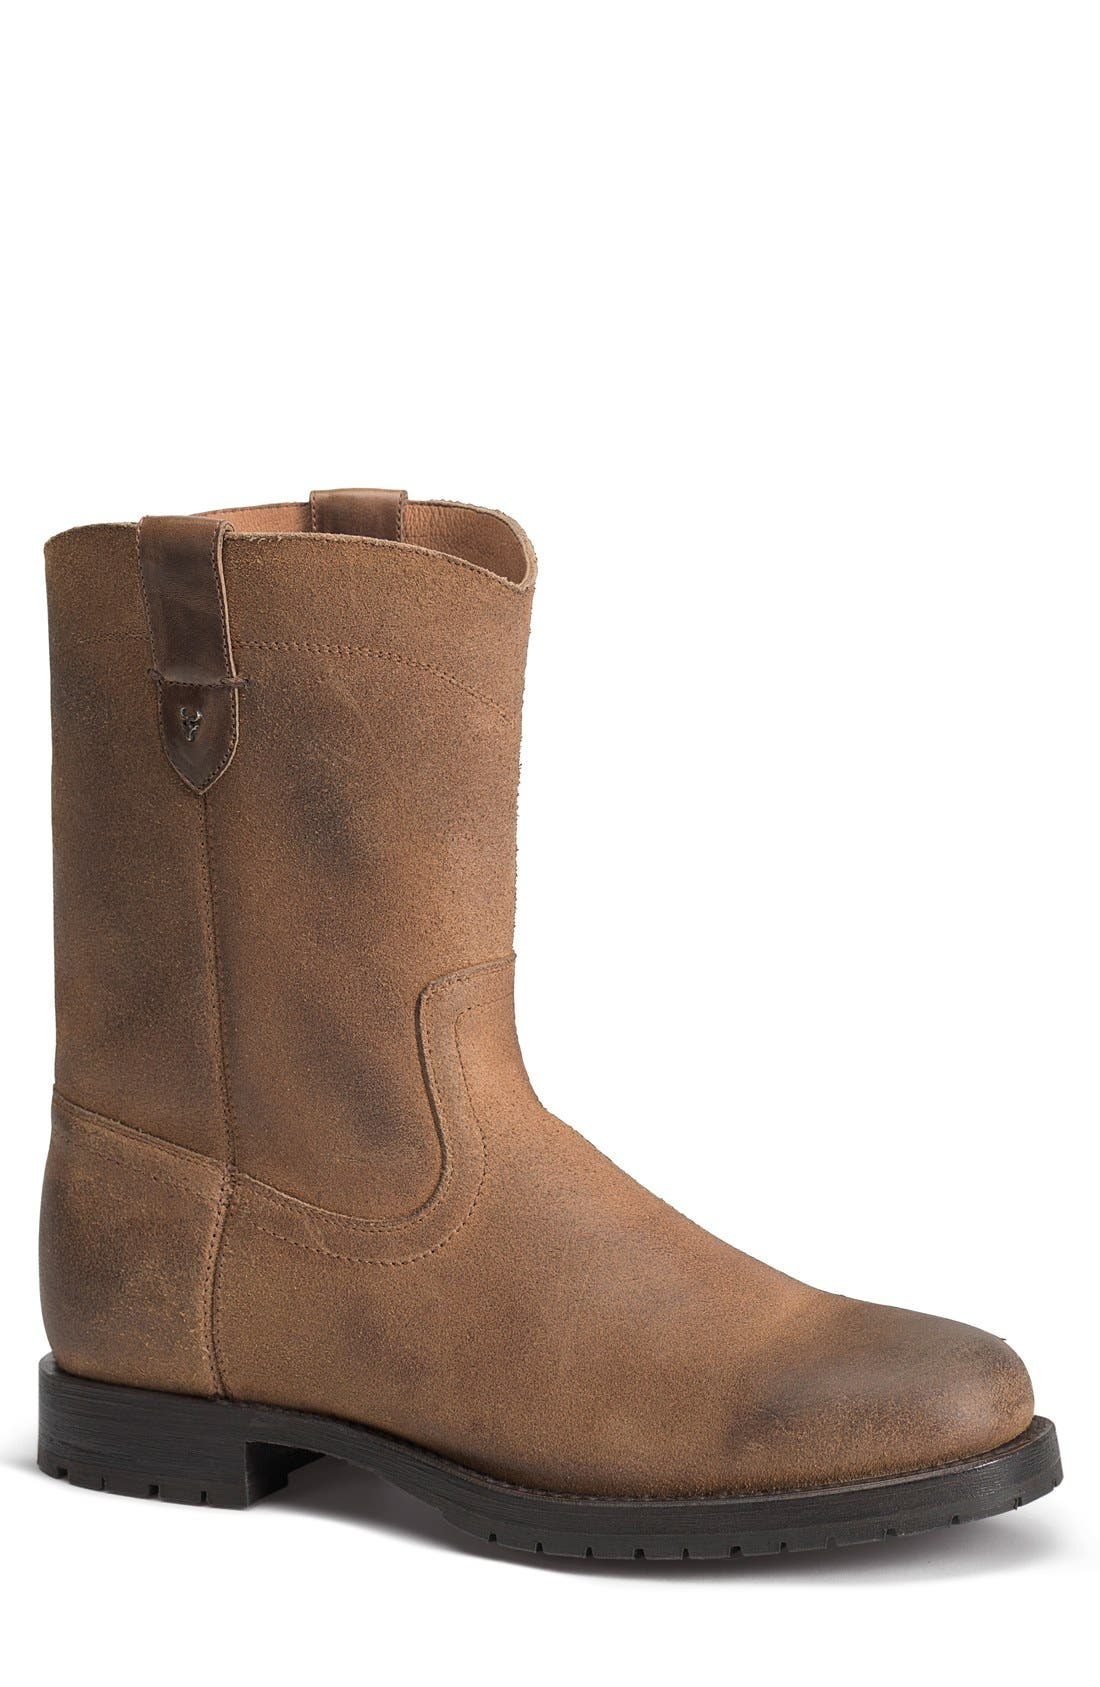 'Austin' Boot,                         Main,                         color, Whiskey Leather